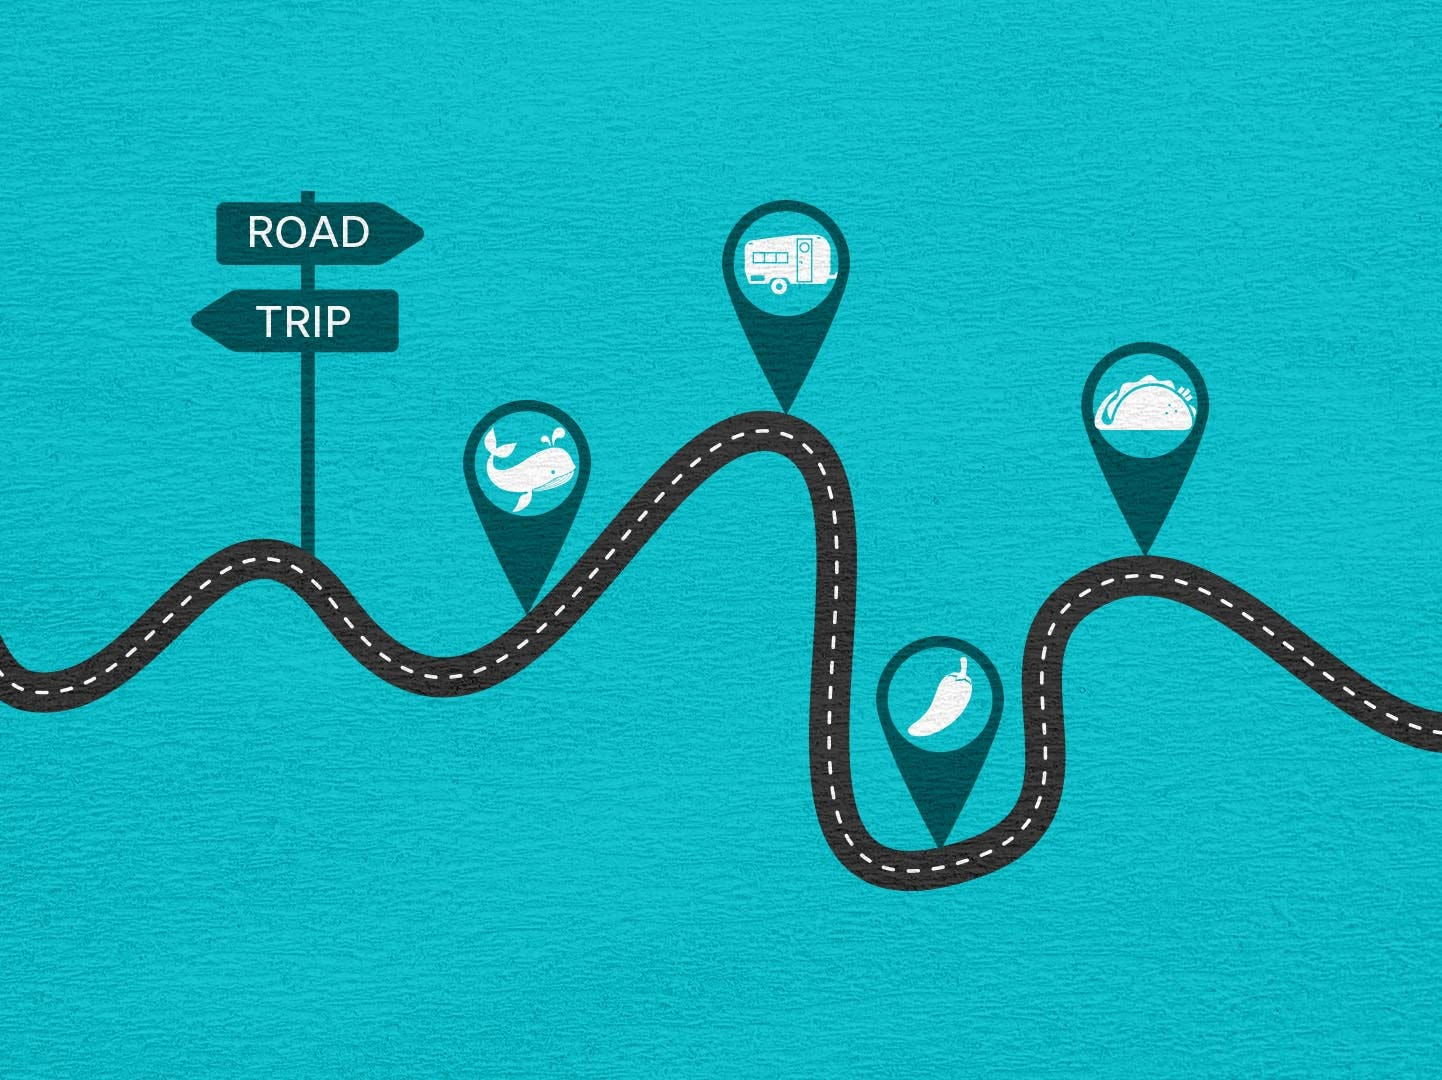 Amp up your next road trip by choosing a theme